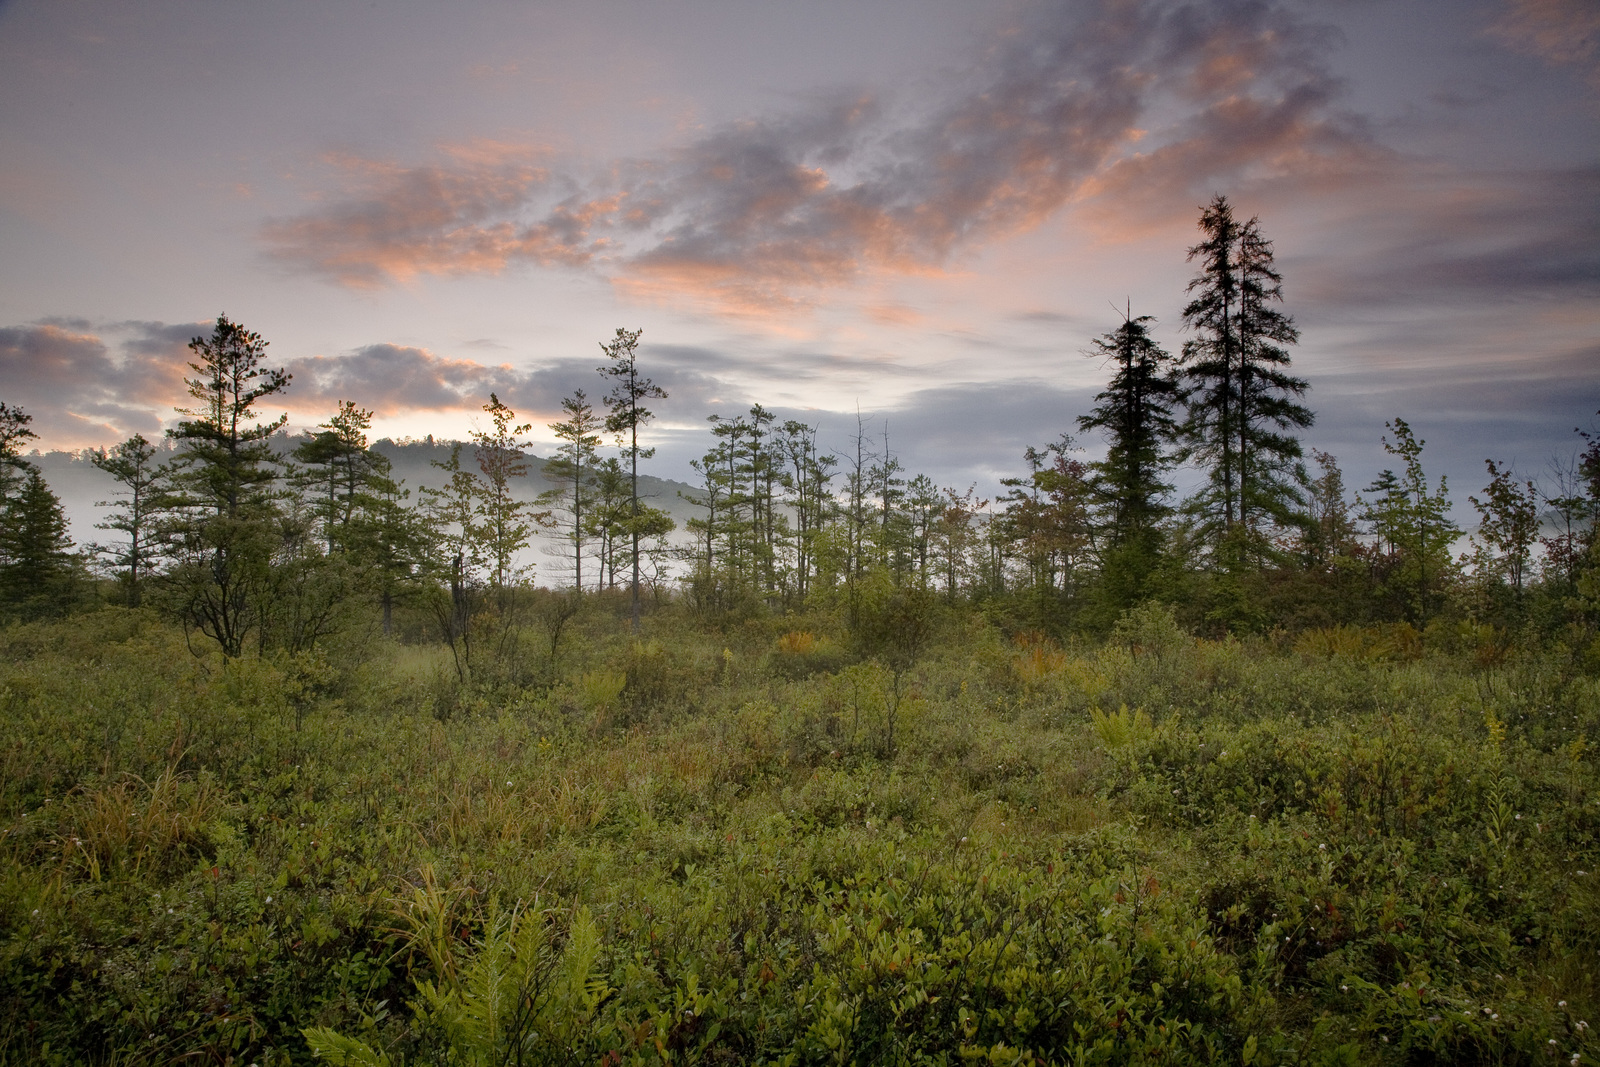 Sunrise over spruces at The Nature Conservancy's Cranesville Swamp Preserve in northern West Virginia. Photo by Kent Mason.